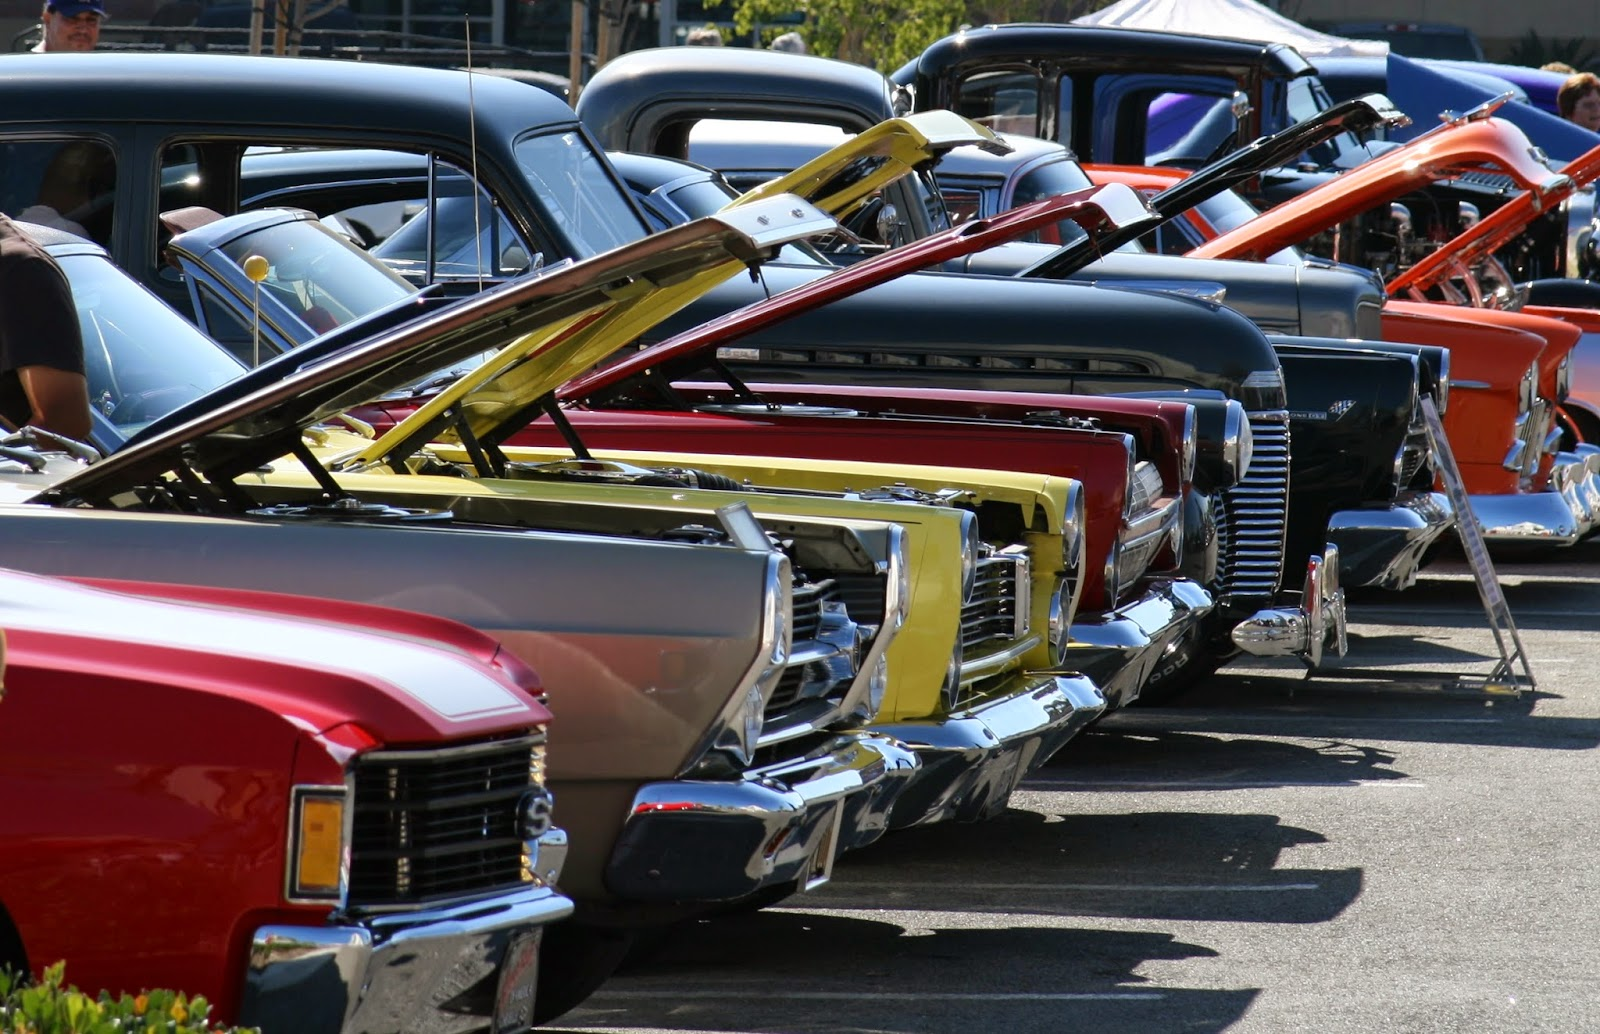 Th Annual Classic Car Show Point Of Rocks Campground - Local classic car shows